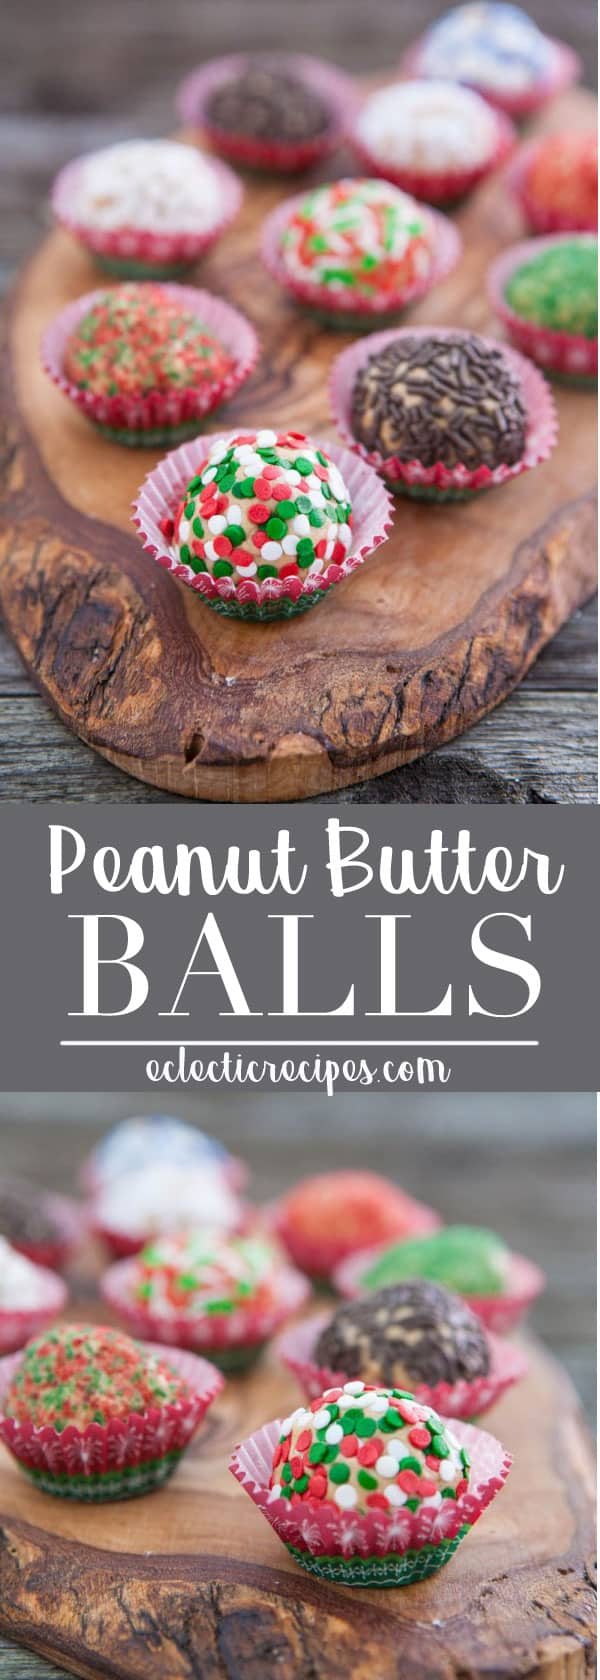 Easy to make Peanut Butter Balls make the perfect holiday treat! #recipe #christmas #holiday